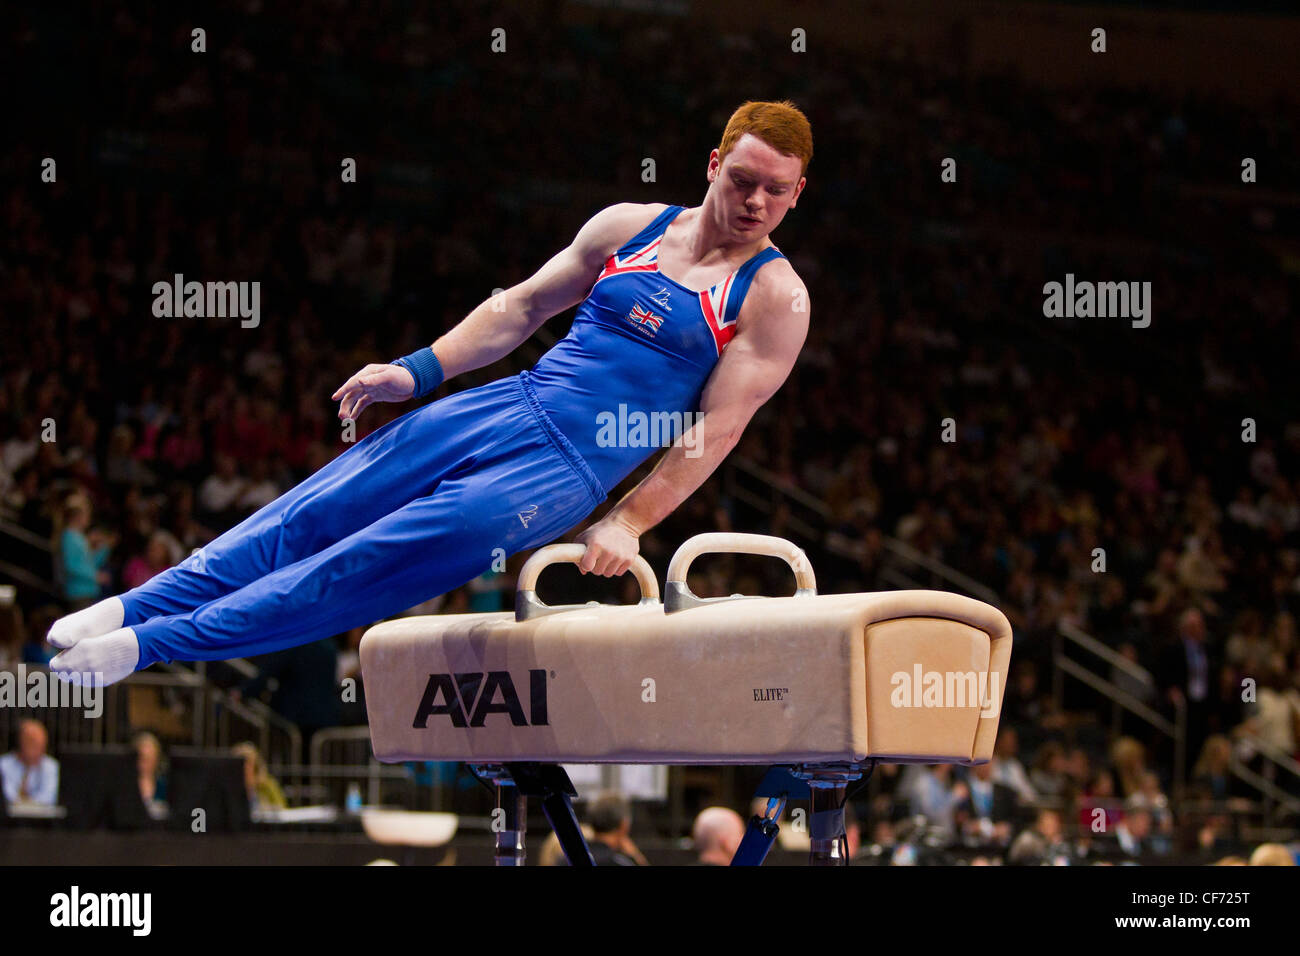 Daniel Purvis (GBR) competes in the pommel horse event at the 2012 American Cup Gymnastics - Stock Image